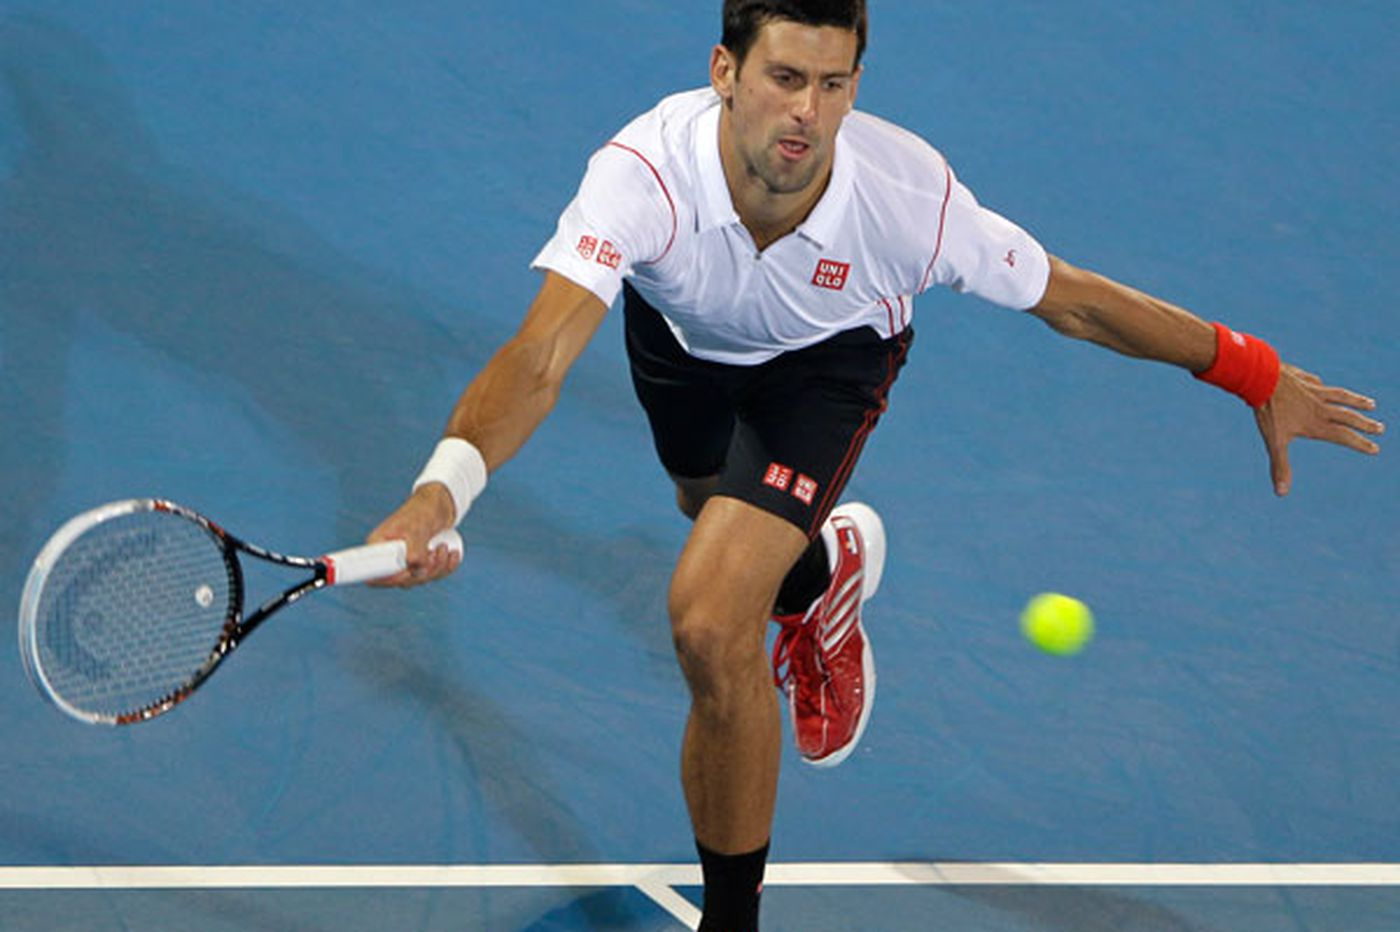 Sports in Brief: Djokovic, Ferrer gain final in the Emirates